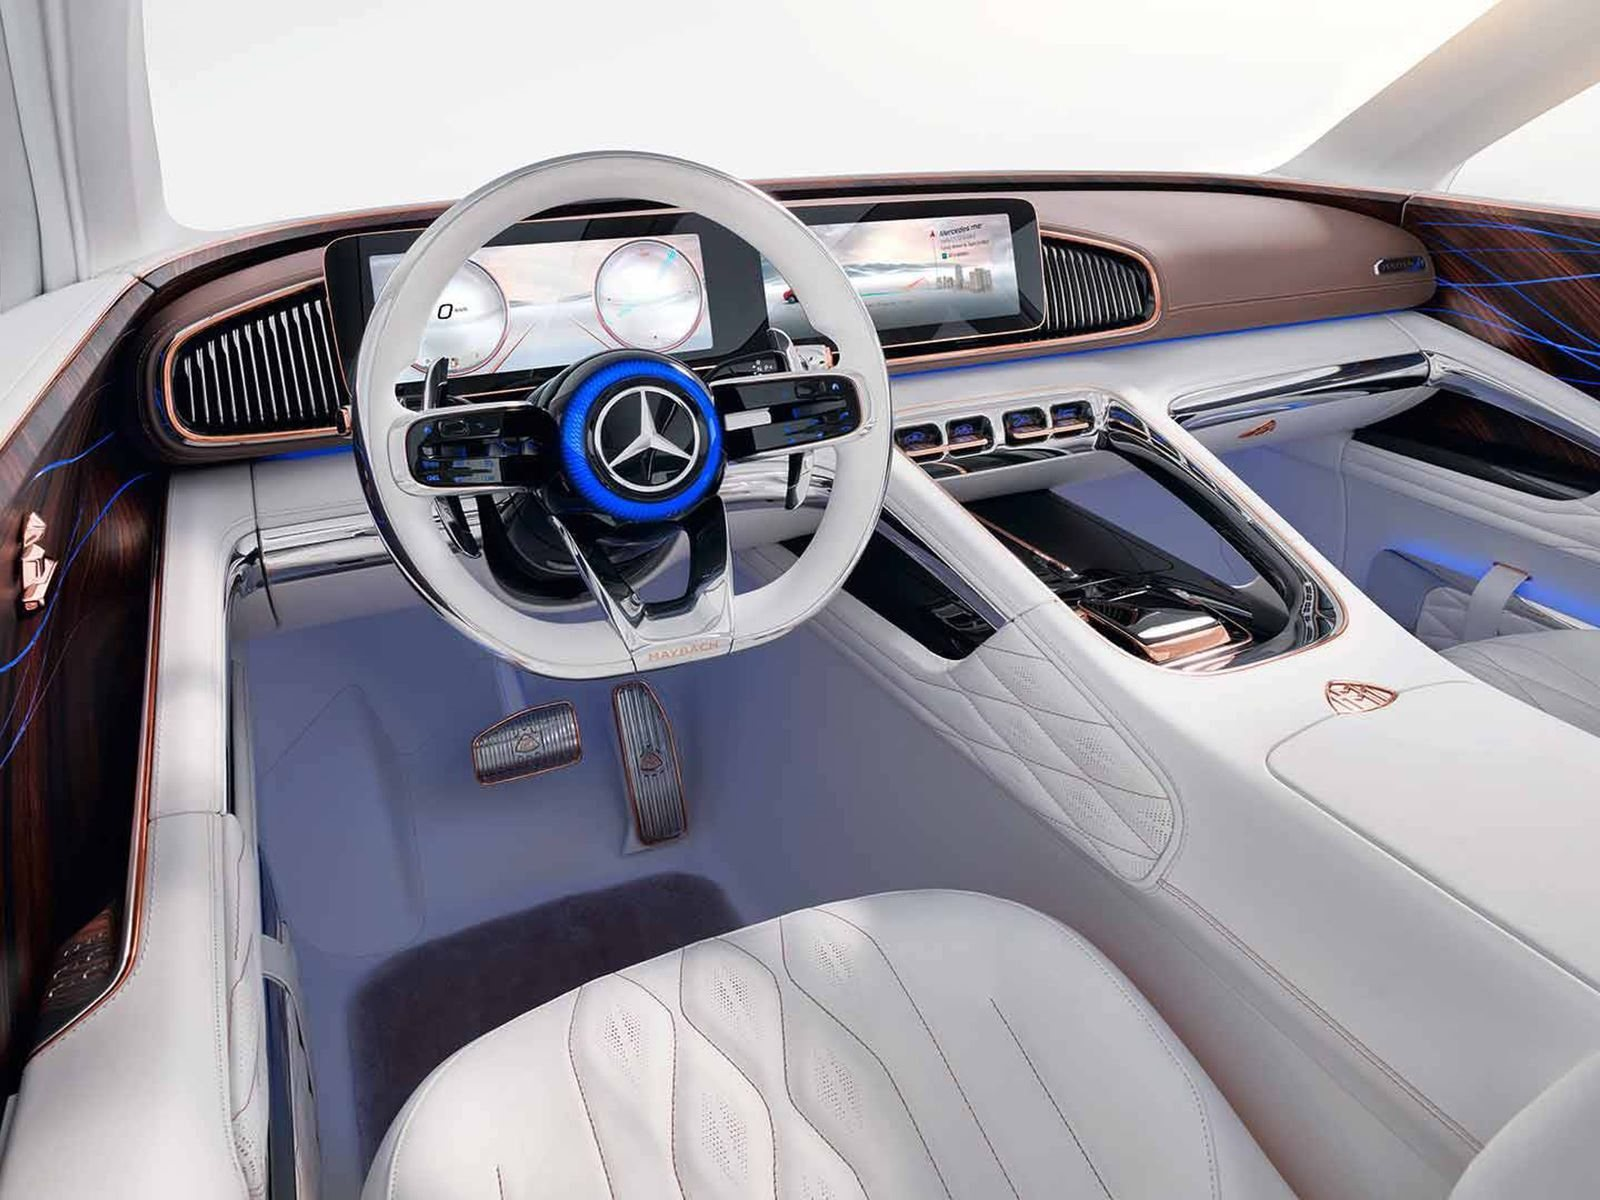 2020 mercedes s-class will have significantly more touch technology